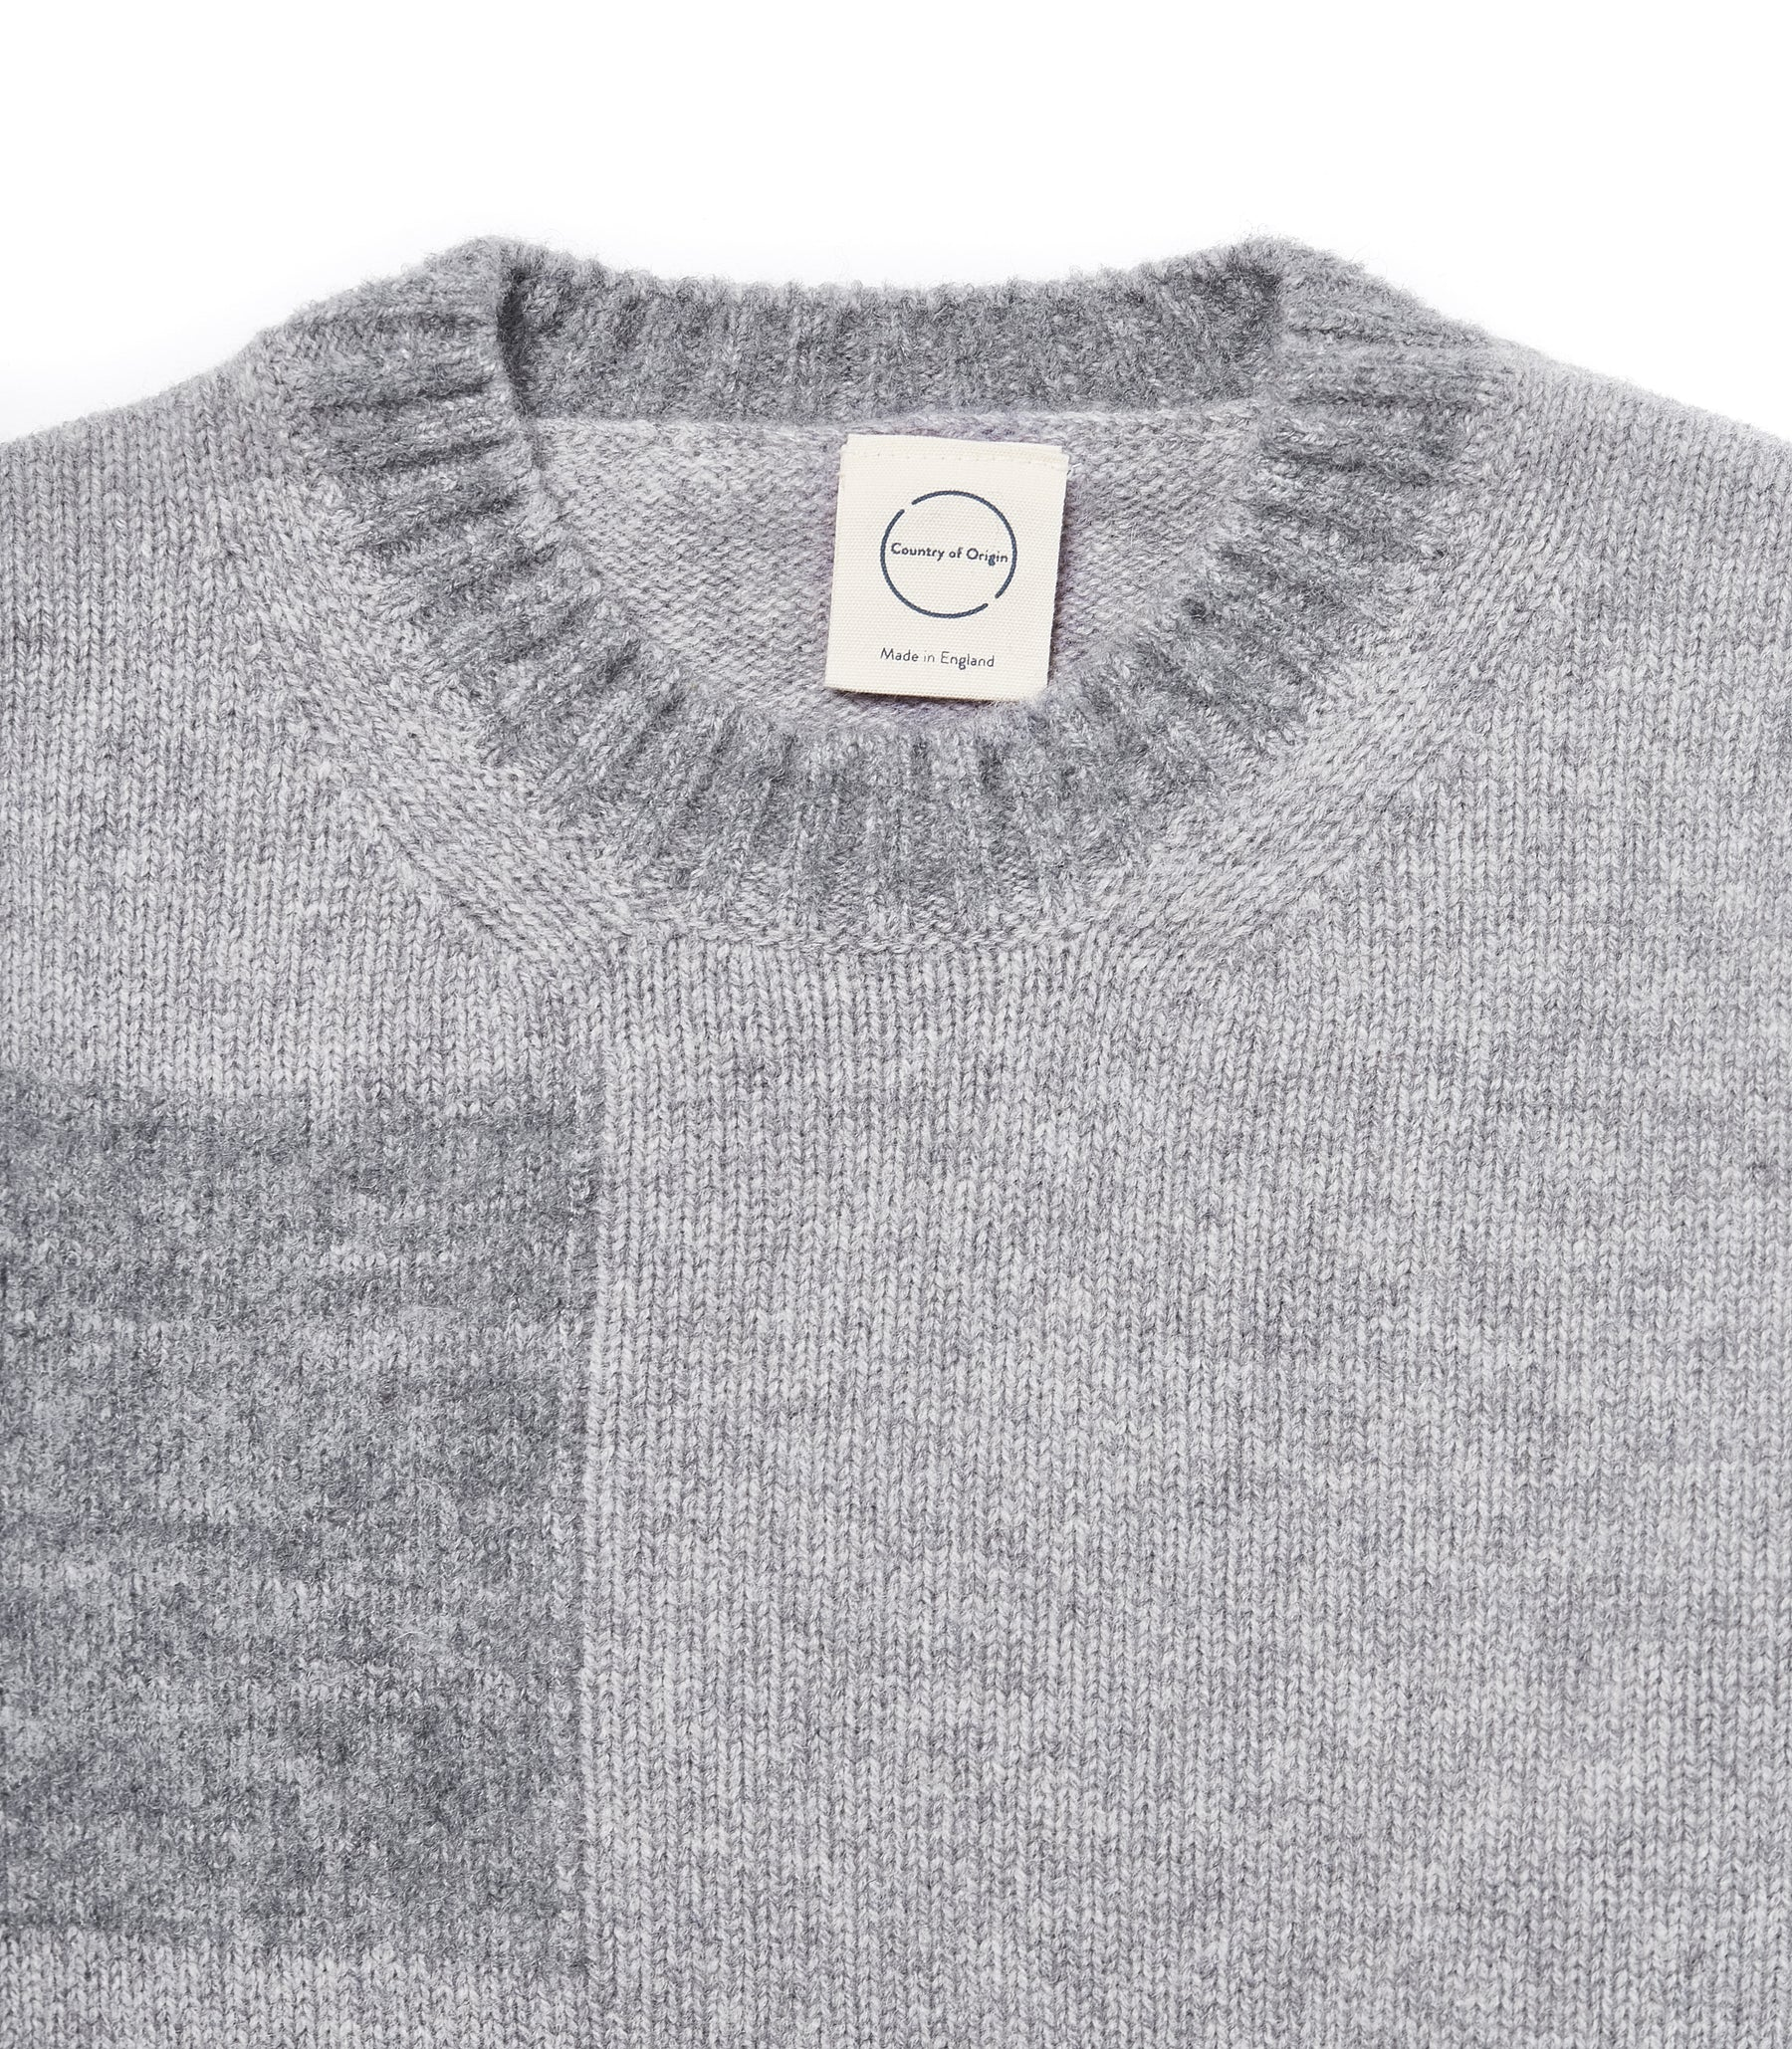 Grey Fleece Patch Boro' Boro'• Lambswool Sweater